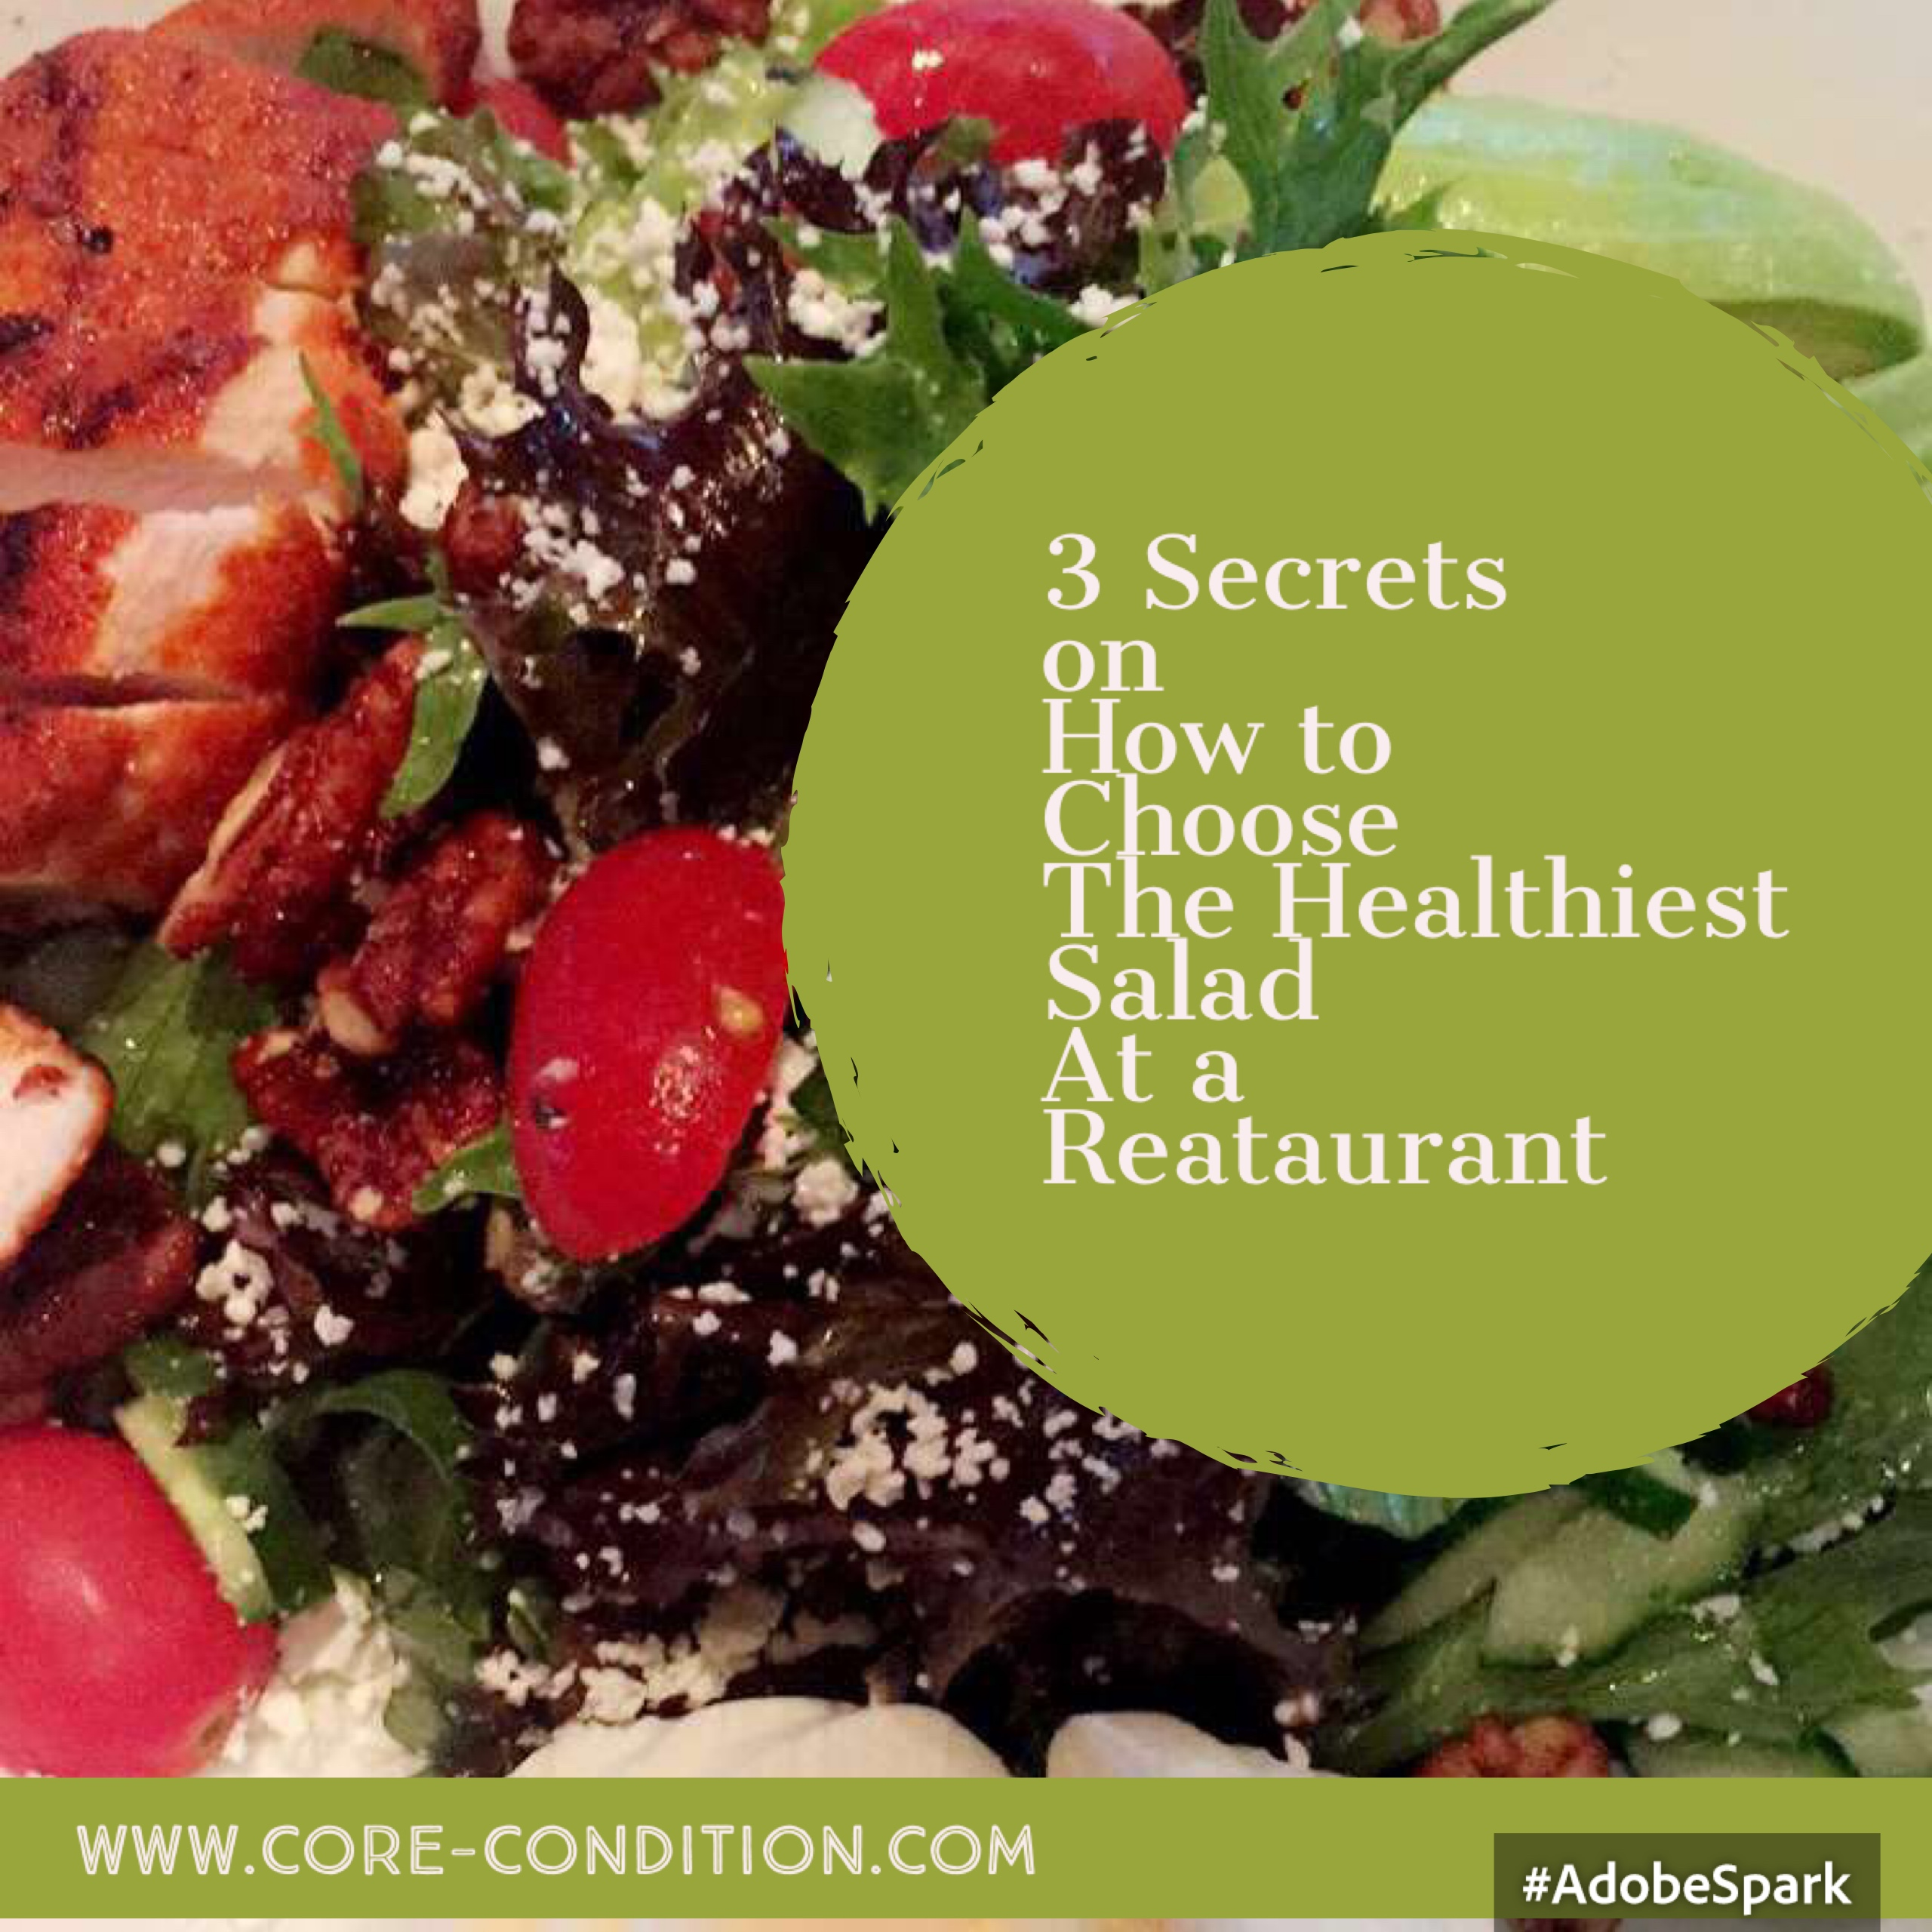 3 Secrets on How to Choose A Healthy Restaurant Salad